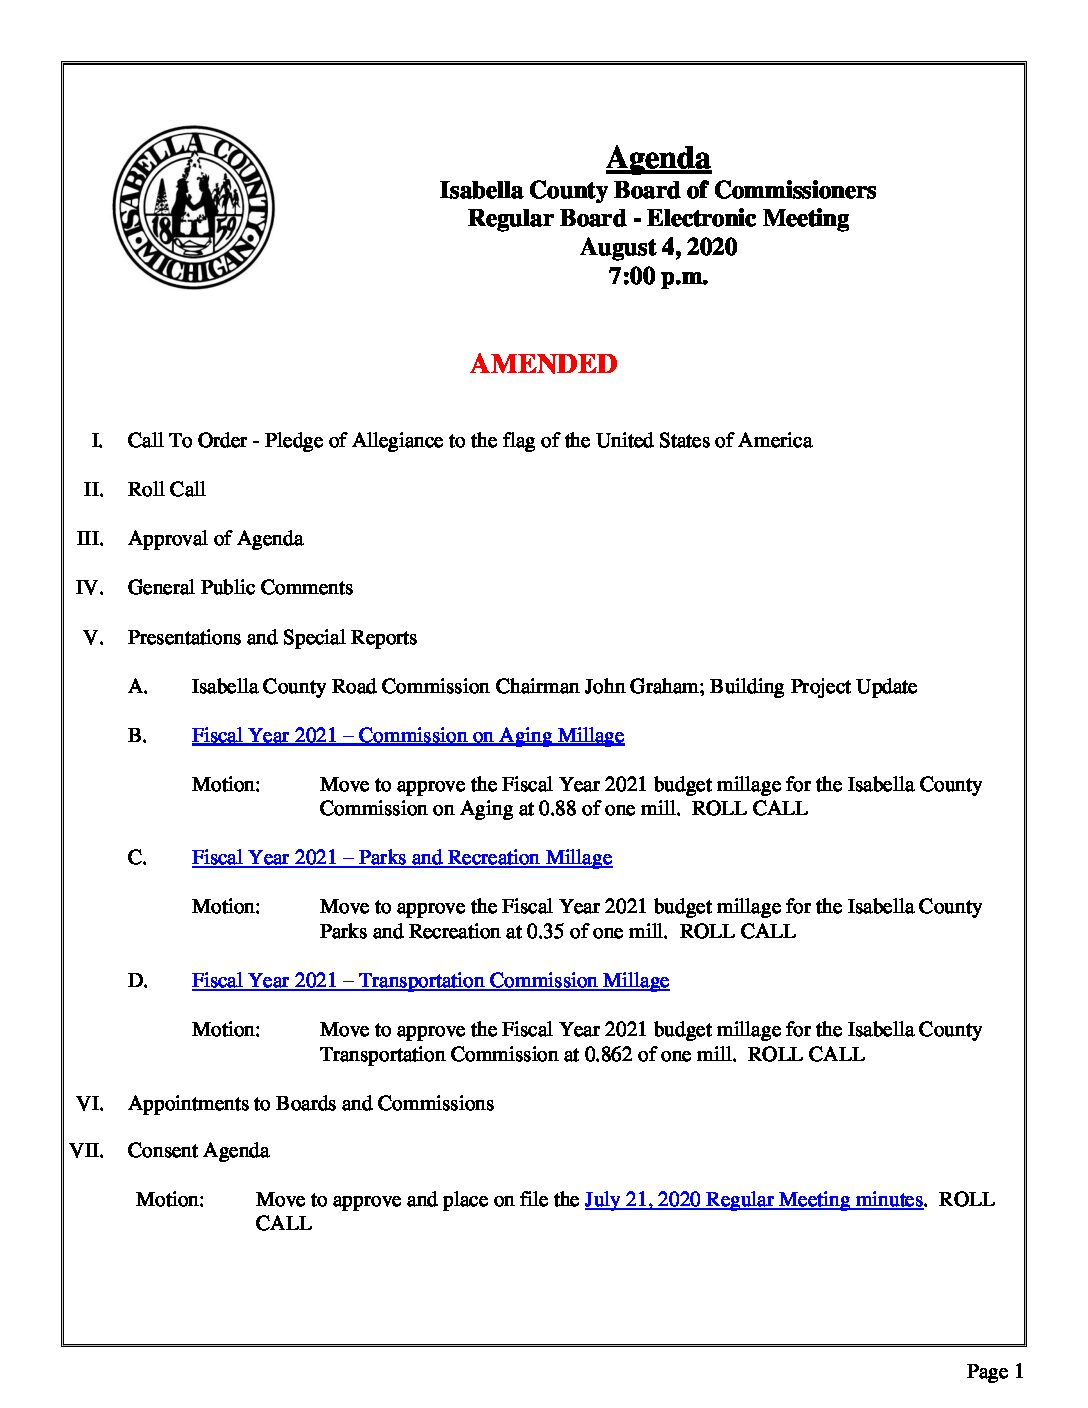 preview image of first page August 4, 2020 Agenda